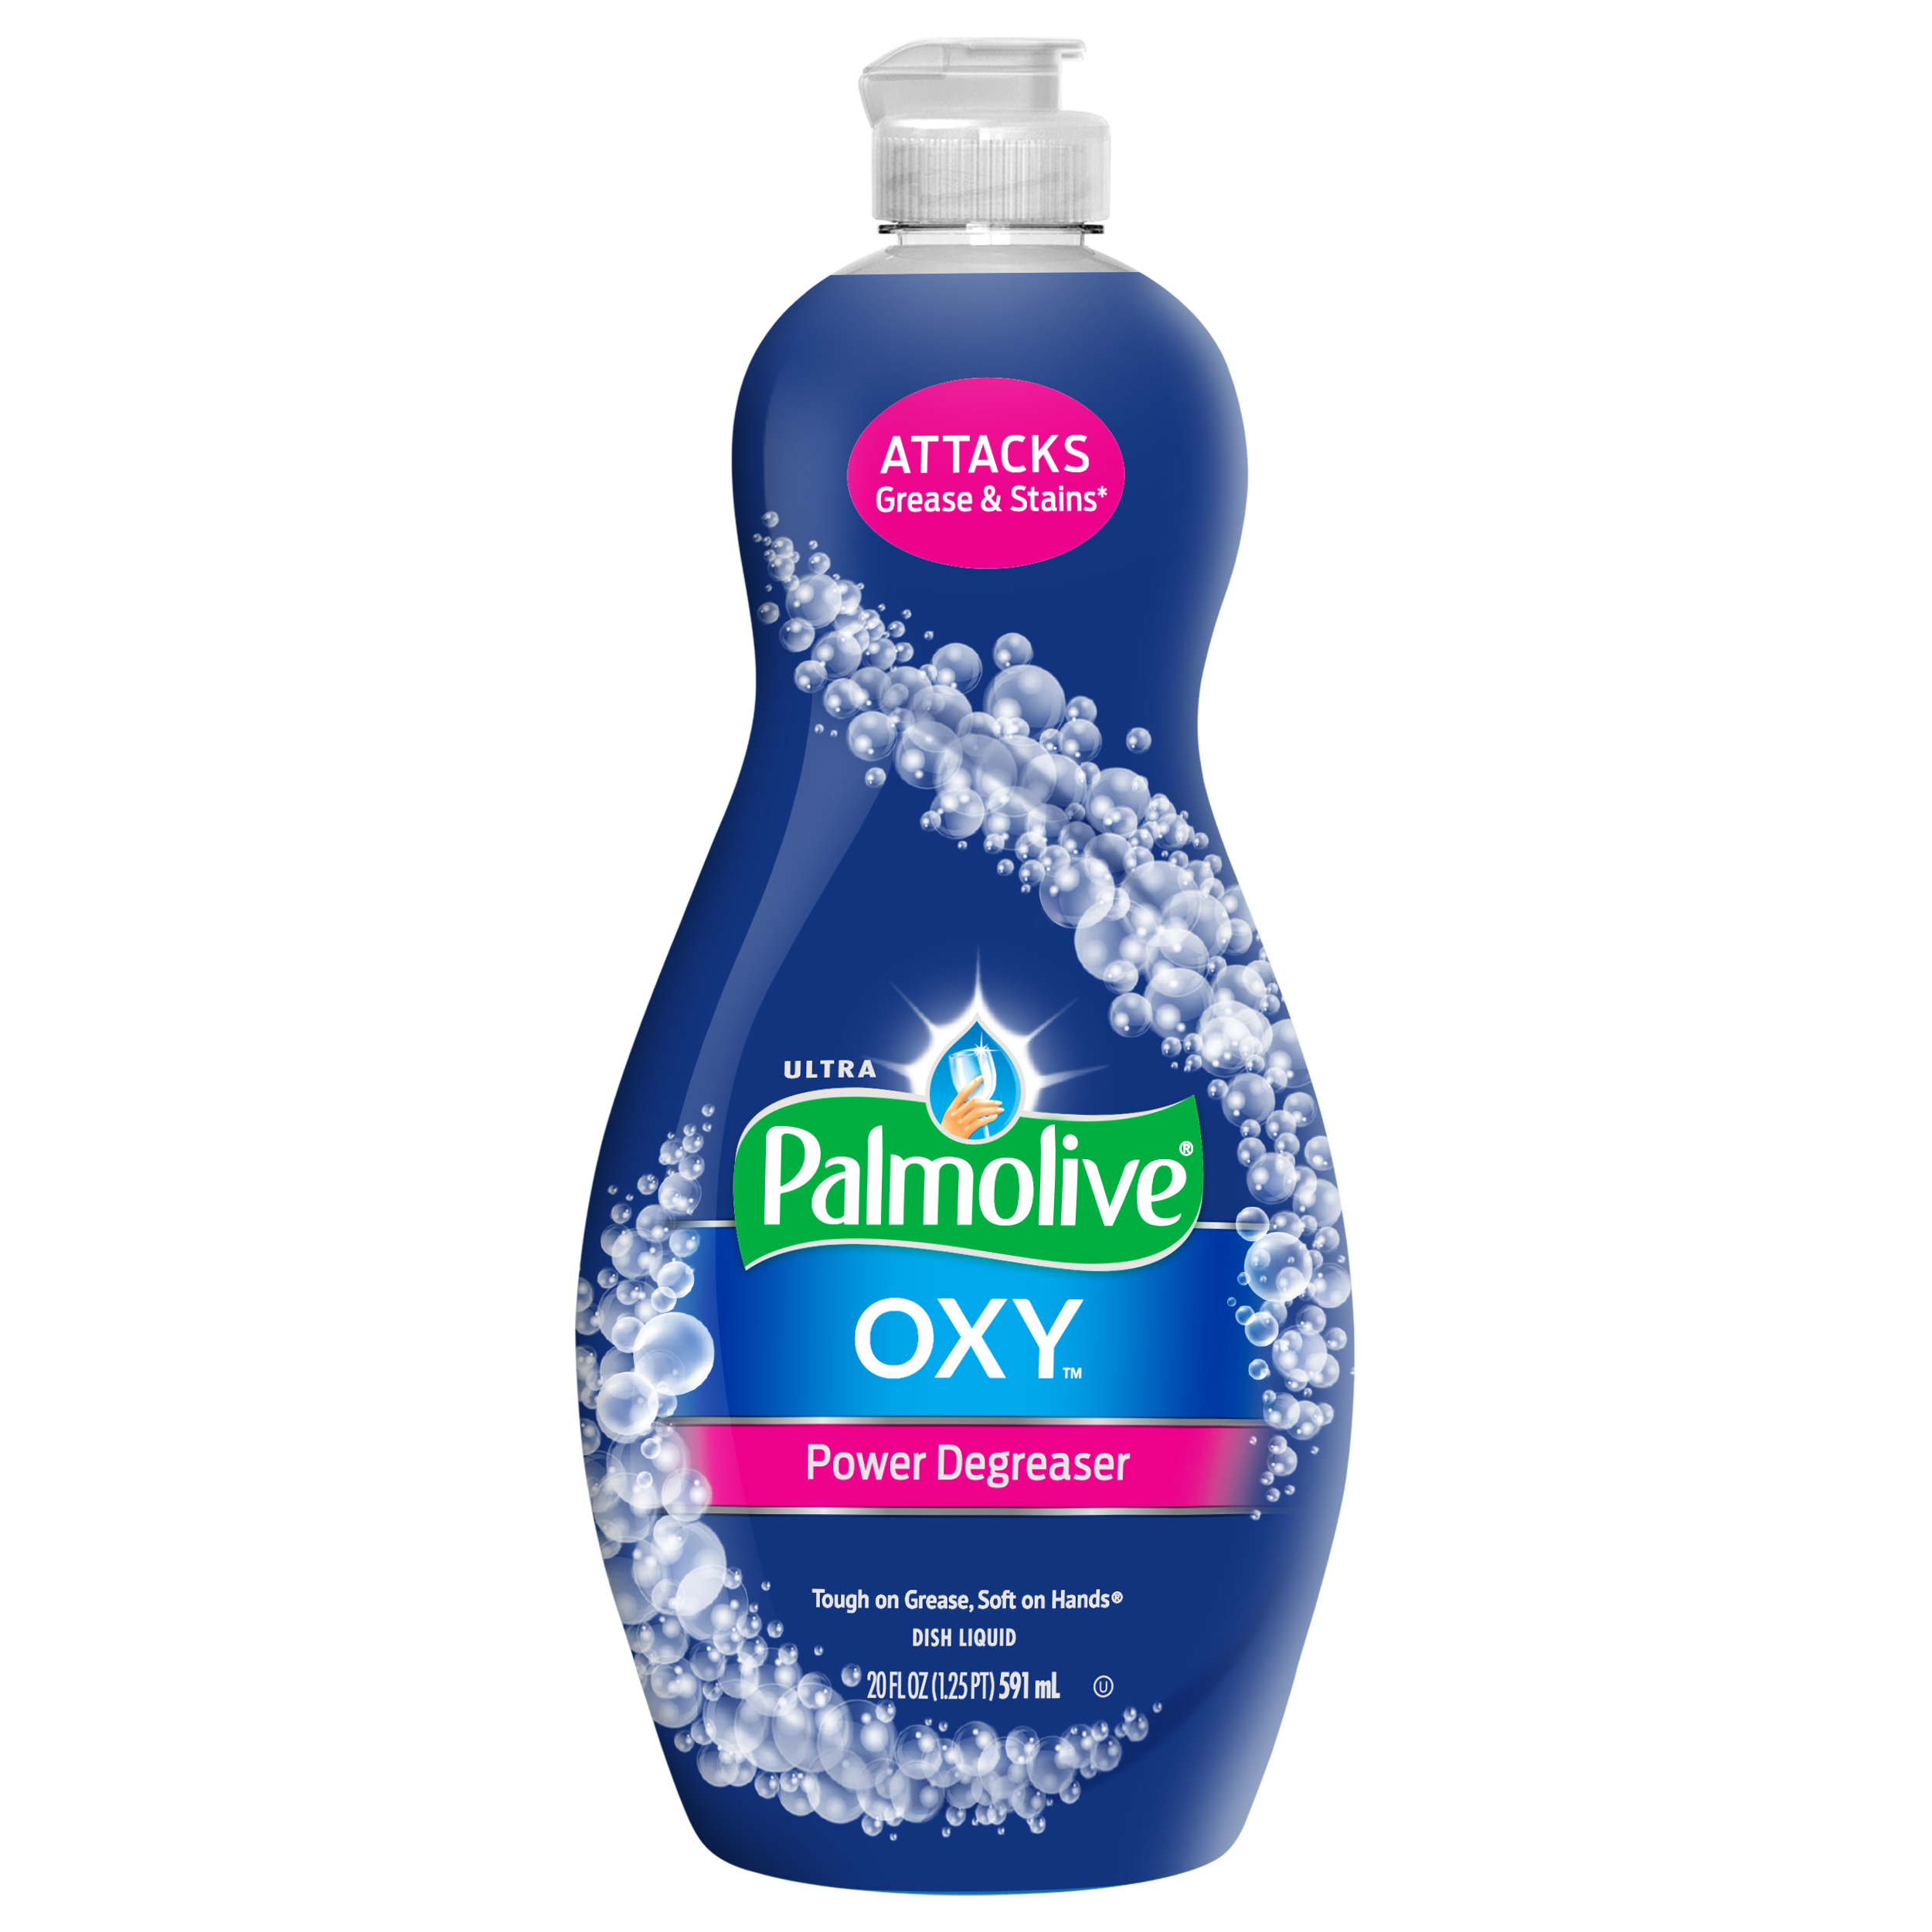 Palmolive Ultra Dishwashing Liquid Dish Soap, Oxy Power Degreaser - 20 fluid ounce